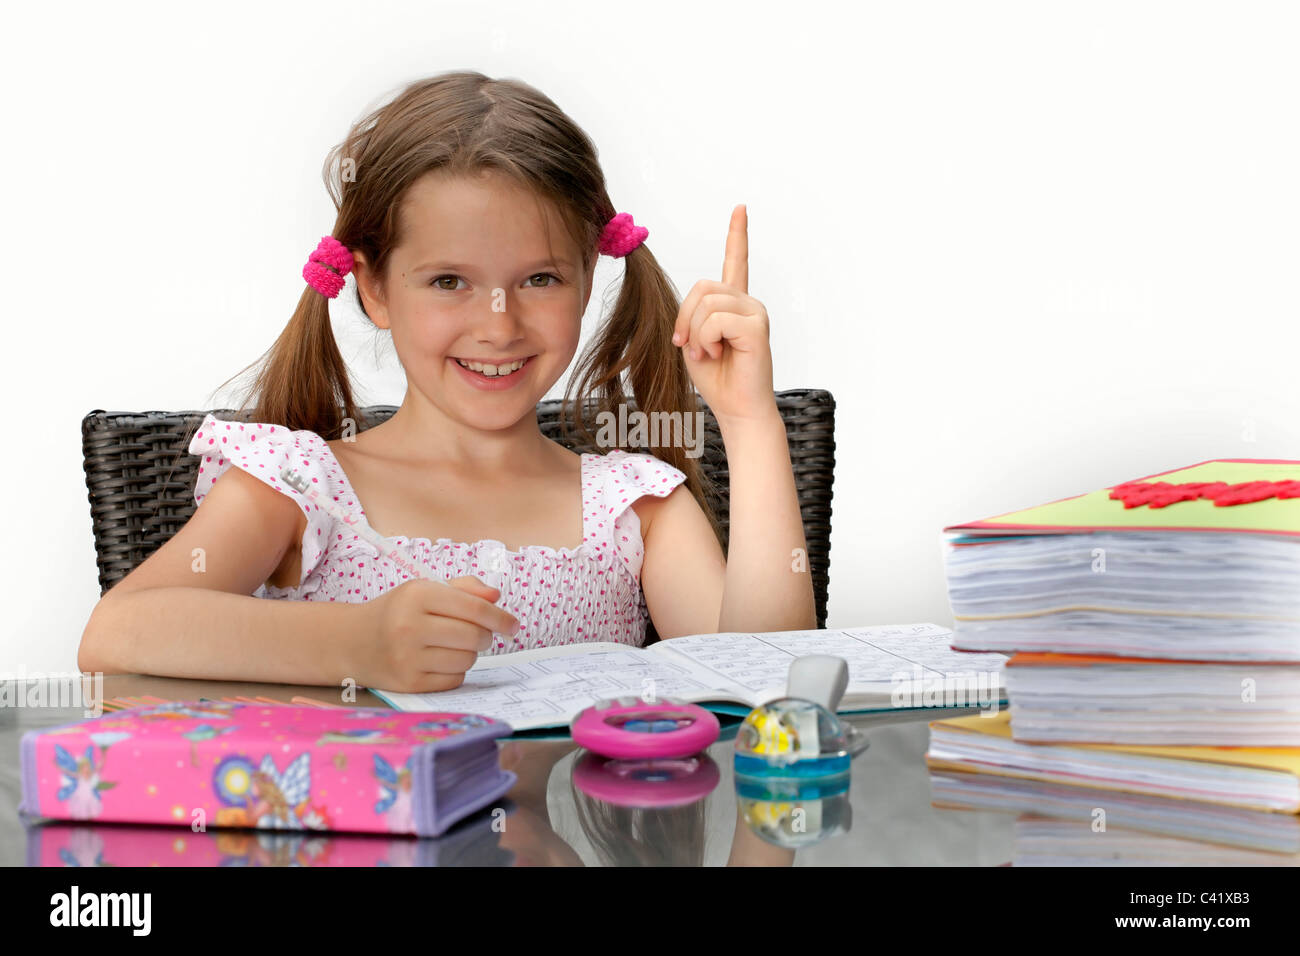 7 year old girl at the table with homework - Stock Image